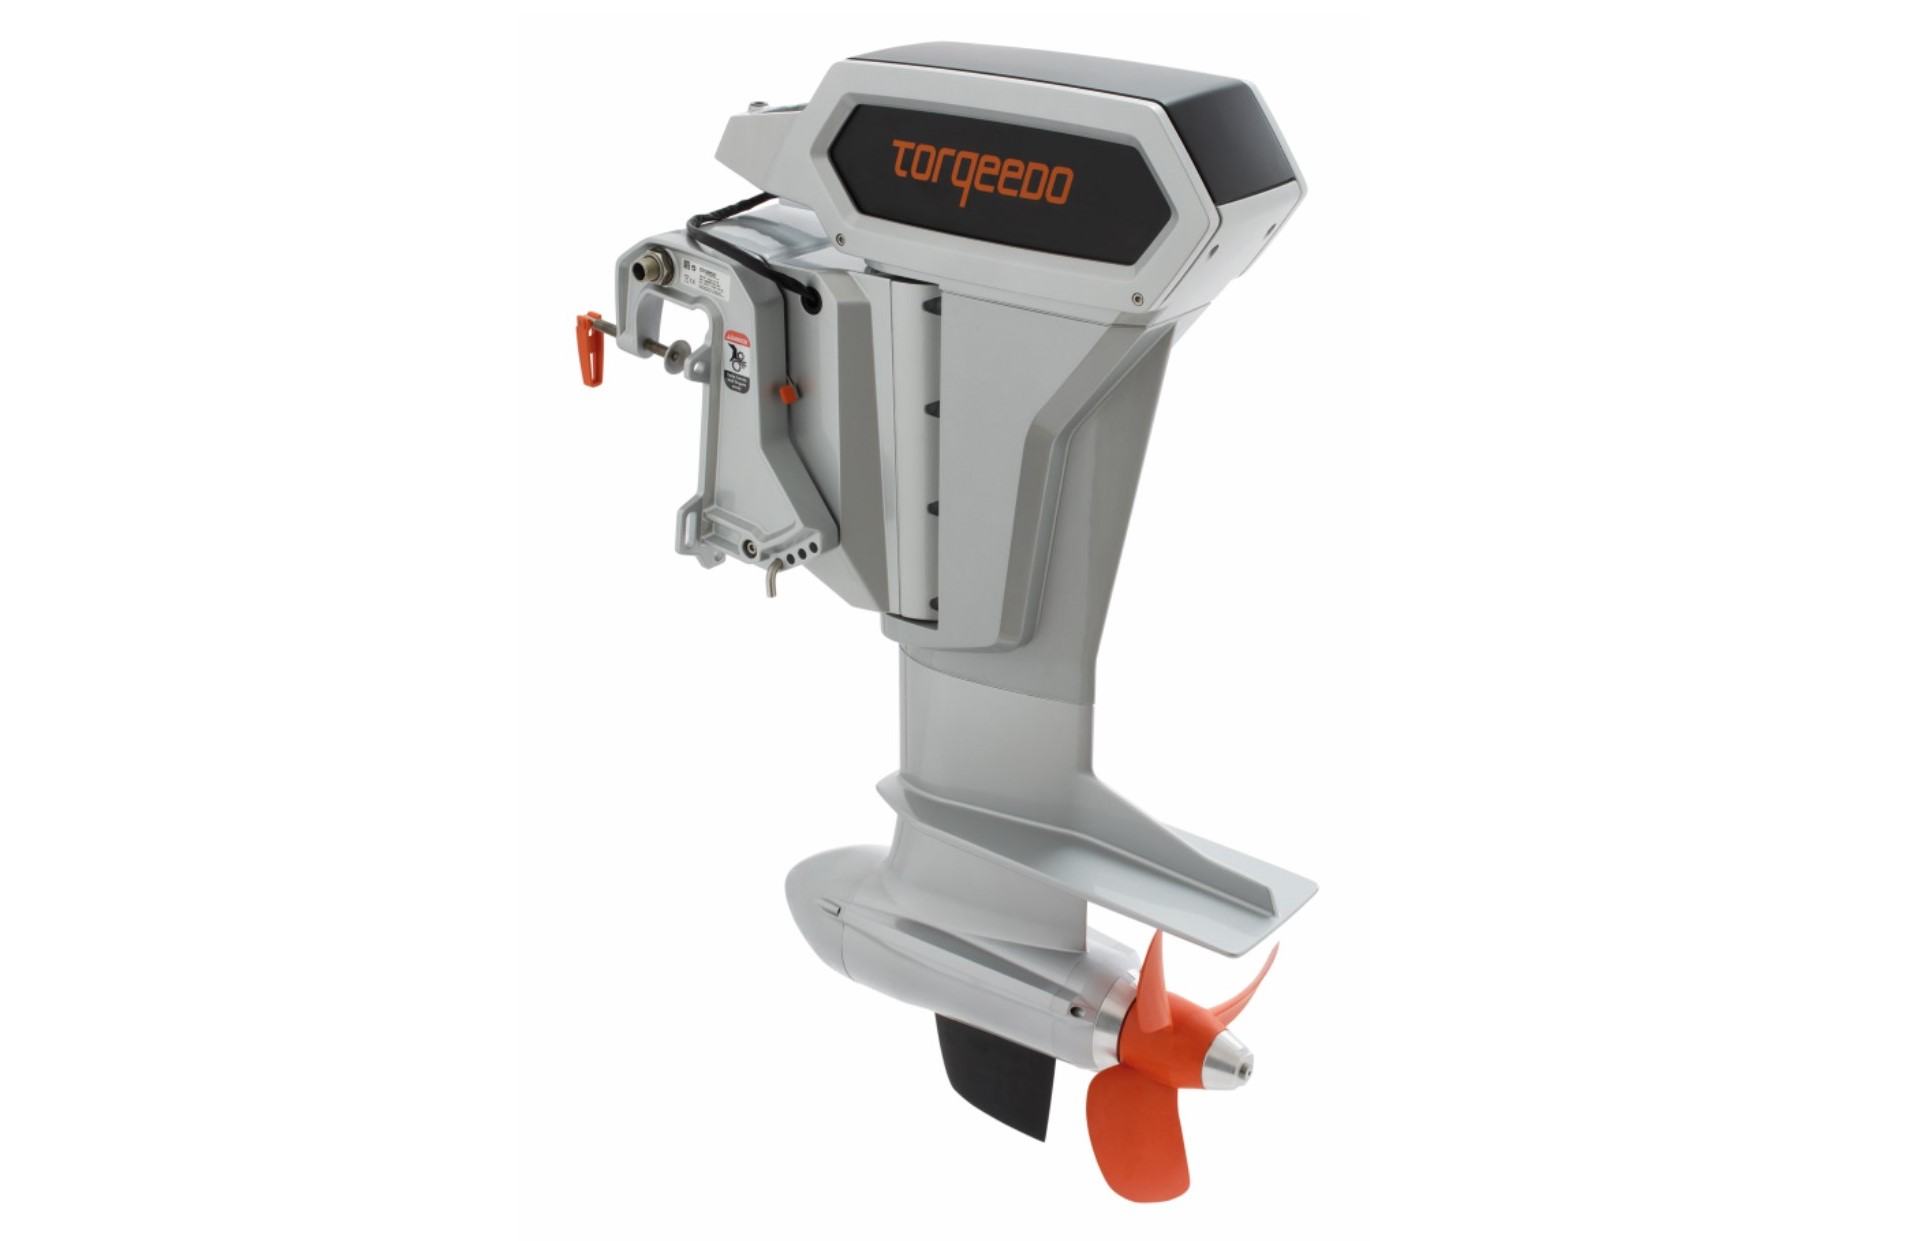 Electric outboard motor - Torqeedo Cruise 10